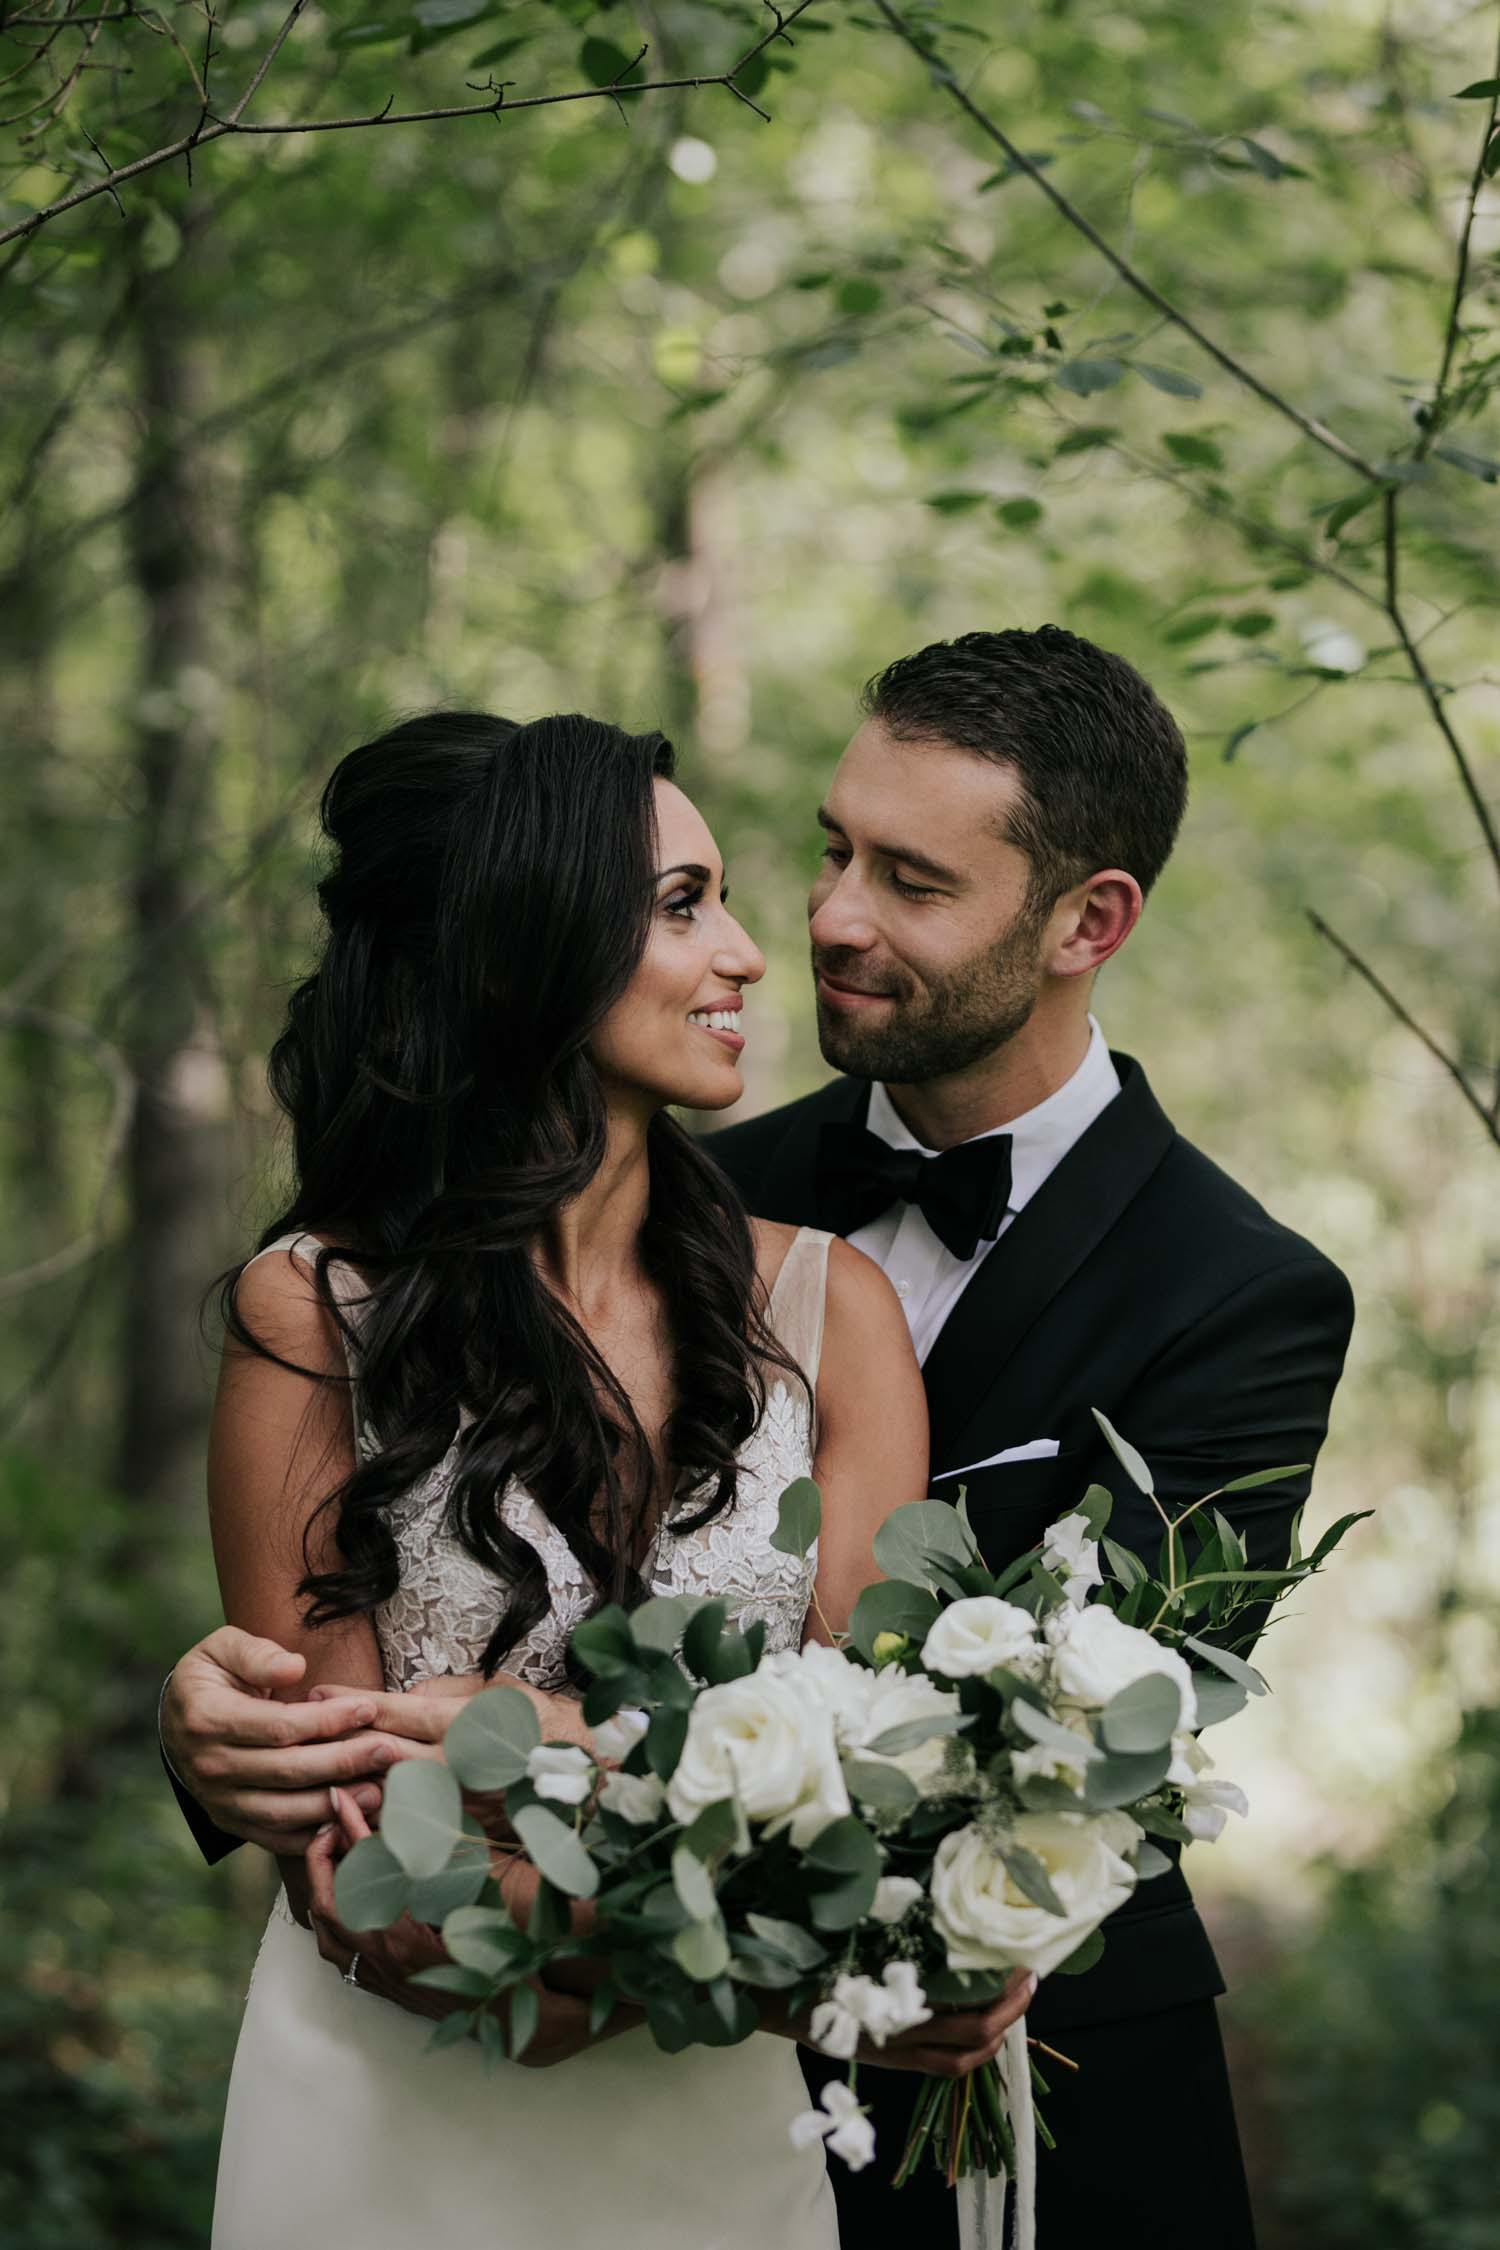 Emotional and natural candid photography at first look reveal in the forest at Fairy Lake Park in Newmarket before wedding at Madsen's Greenhouse